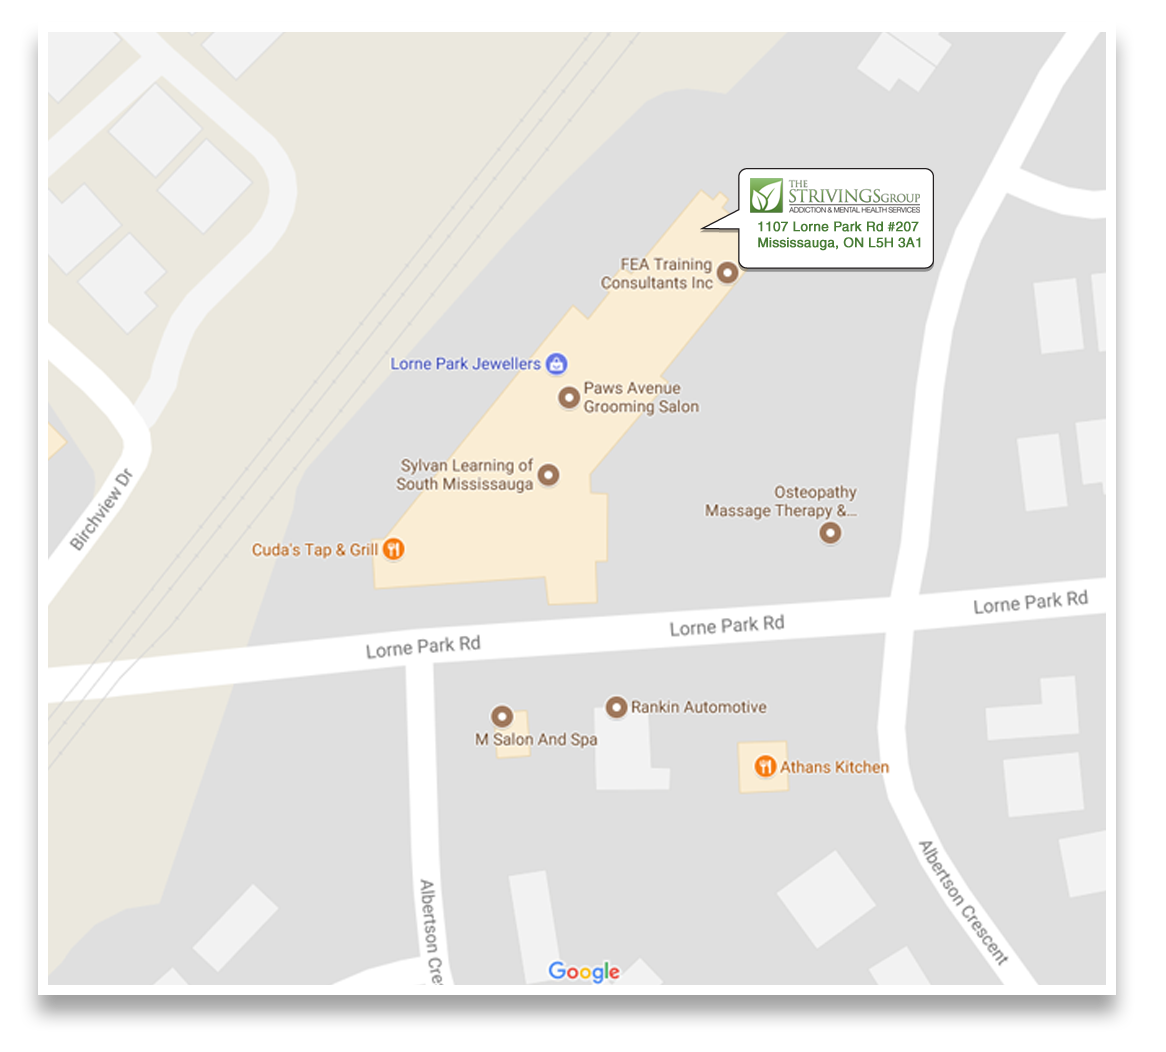 map-of-strivings-group-missississauga-location-lorne-park-rd-queen-st-w-L5H3A1